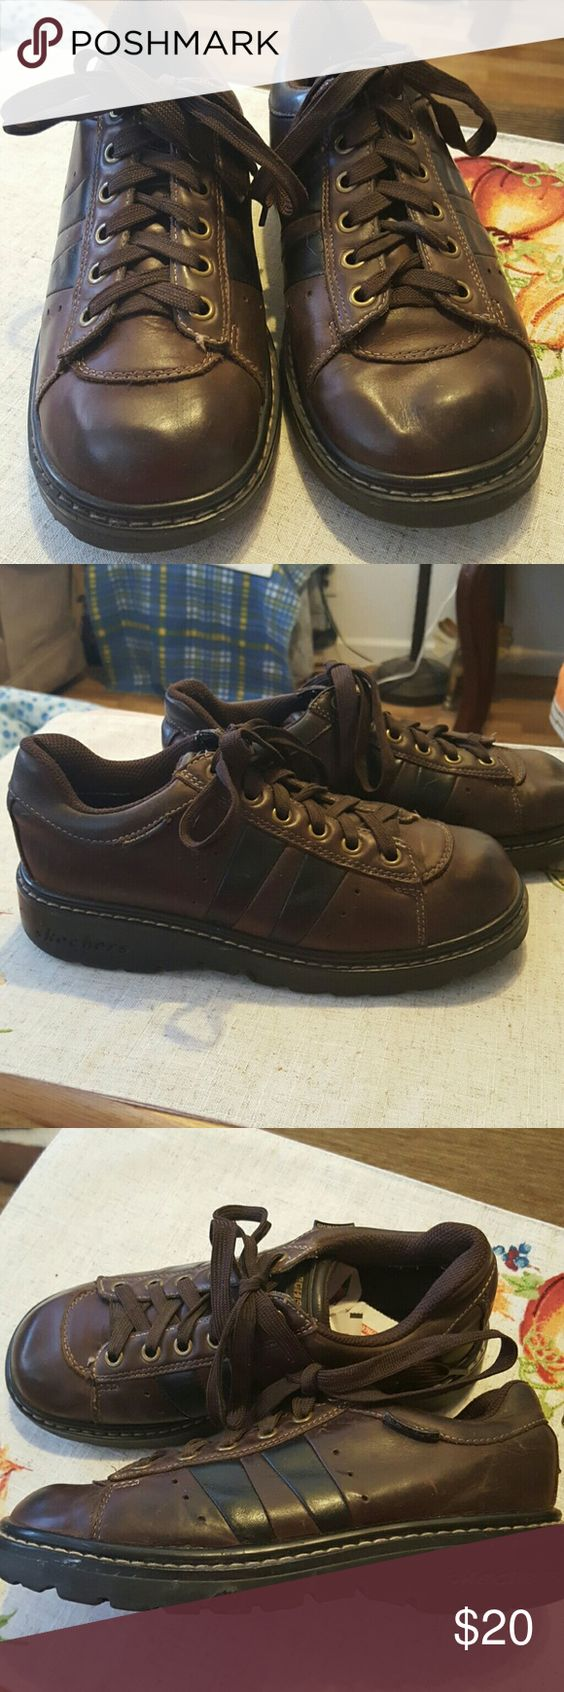 Skechers work shoe All leather aggressive soul Sketcher work shoes good condition Skechers Shoes Ankle Boots & Booties